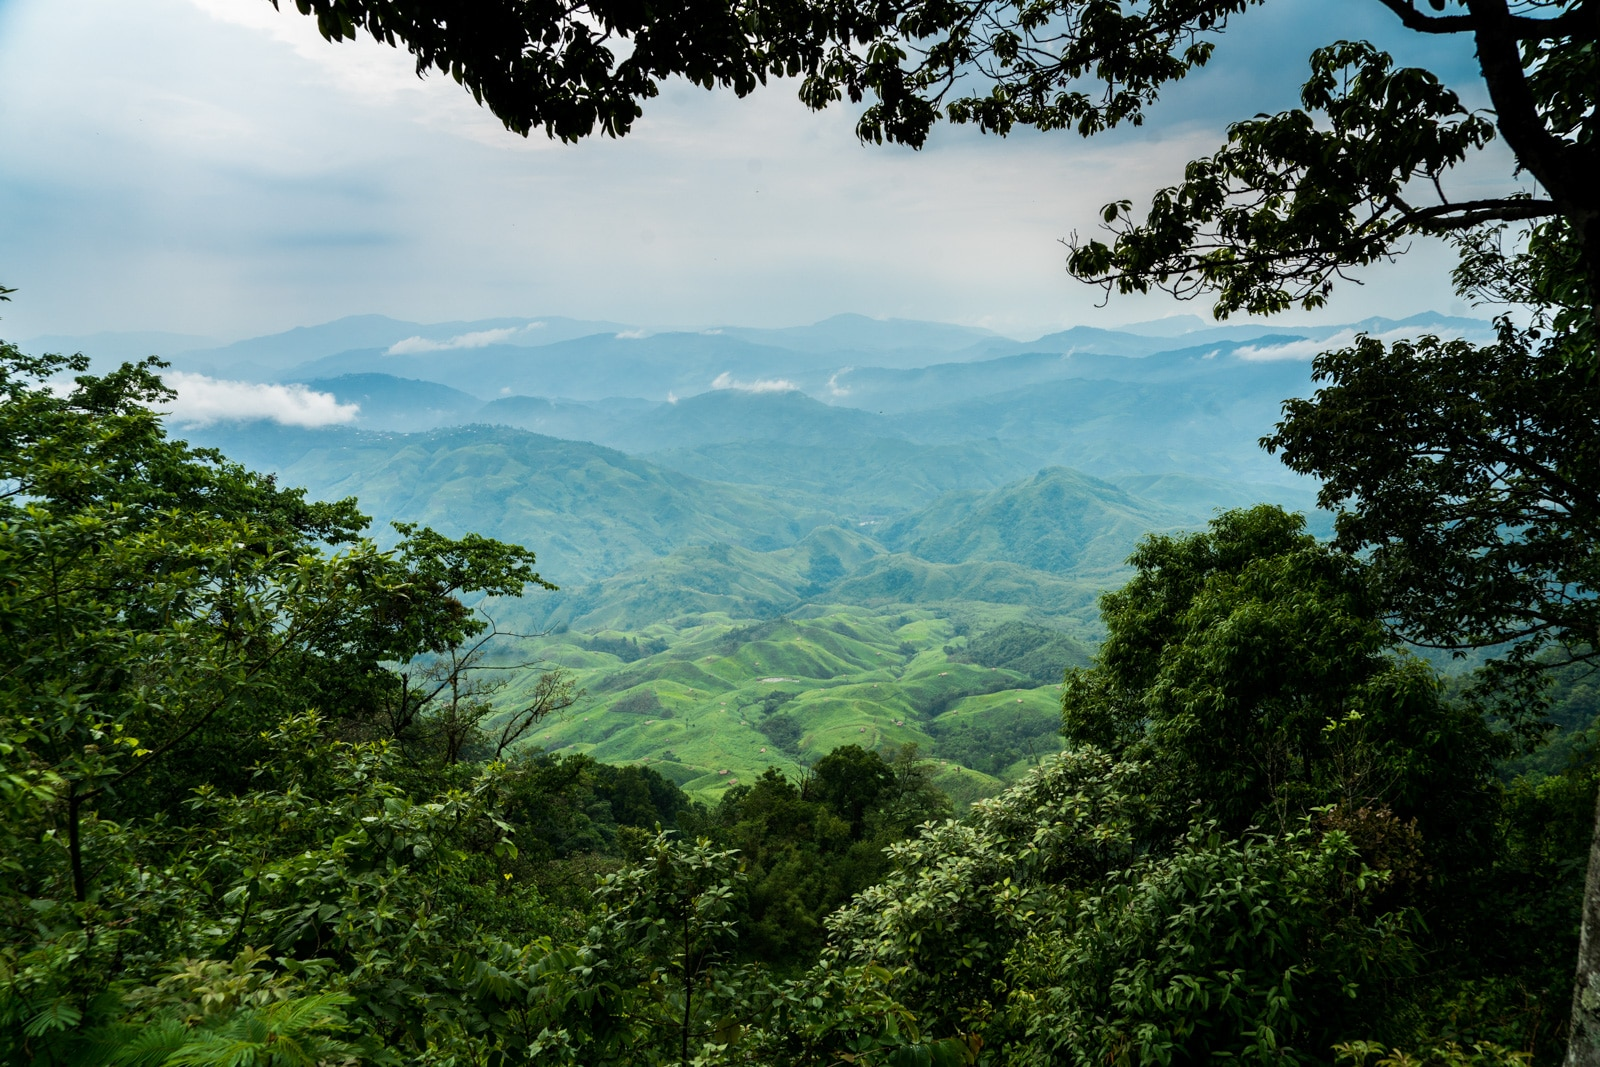 Opium and Jesus and headhunting in Longwa Village, Nagaland, India - Hills and trees in Nagaland - Lost With Purpose